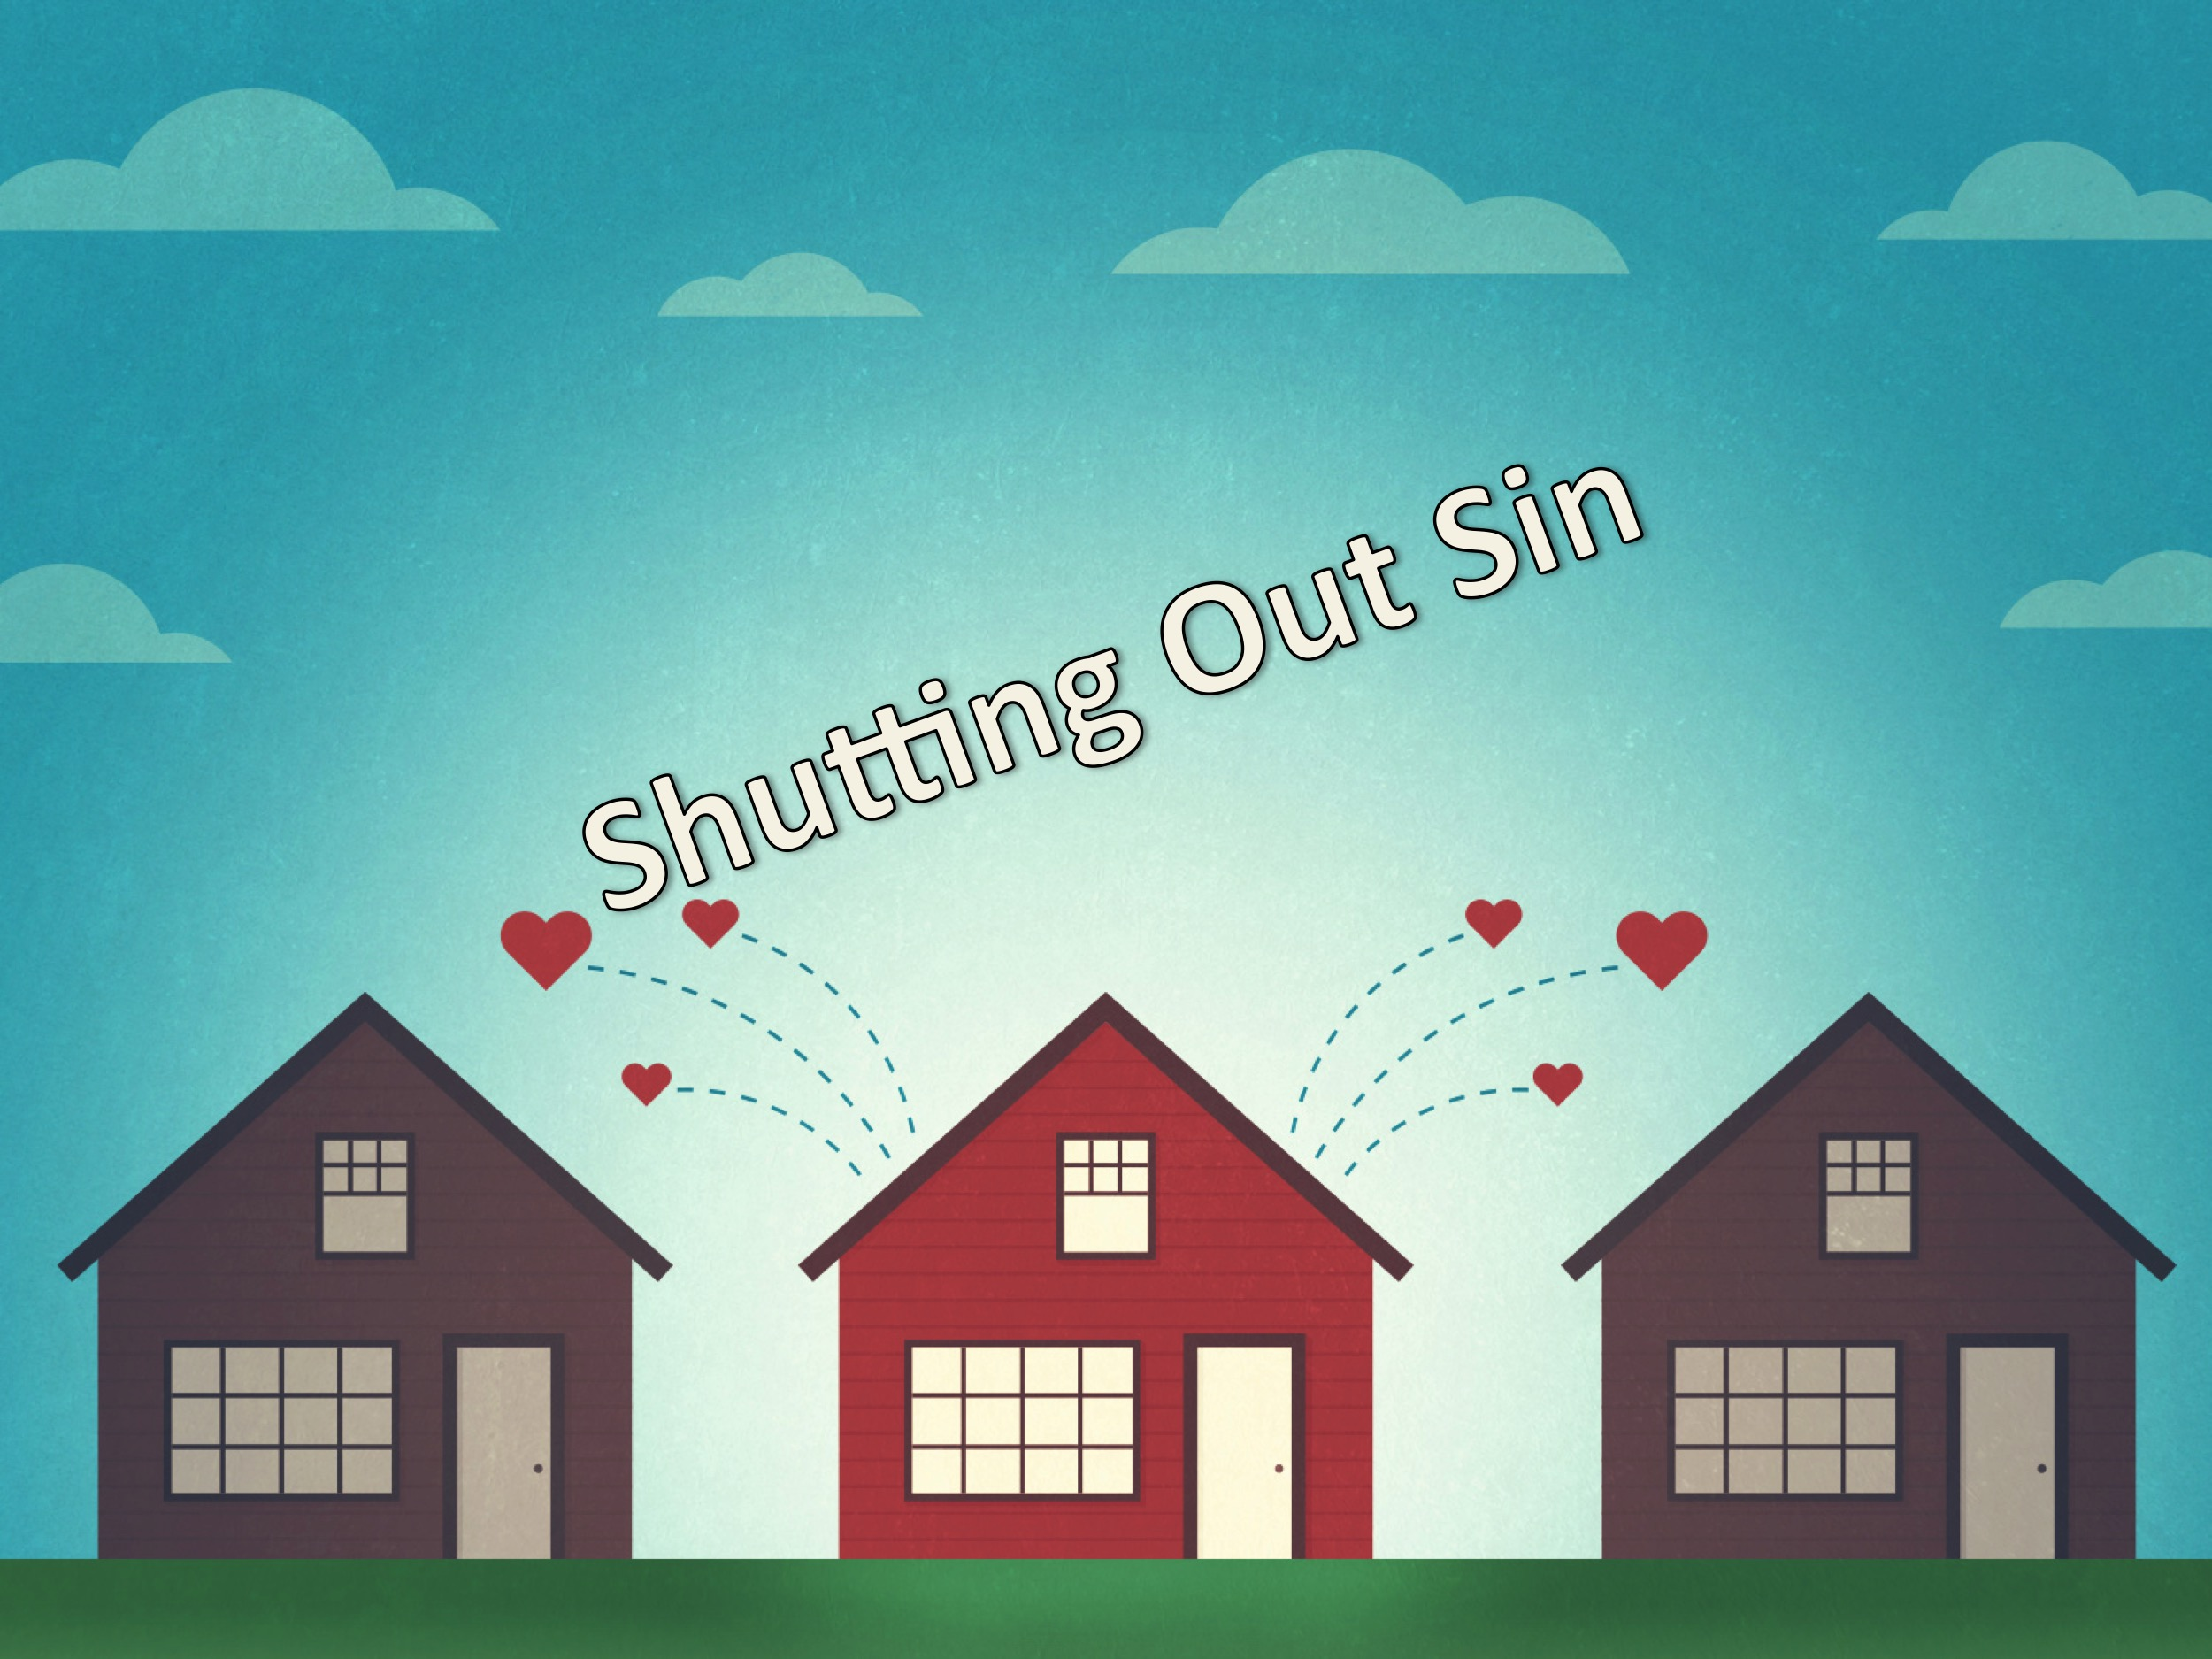 Shutting Out Sin P4 7/25/2017 8:31:31 AM